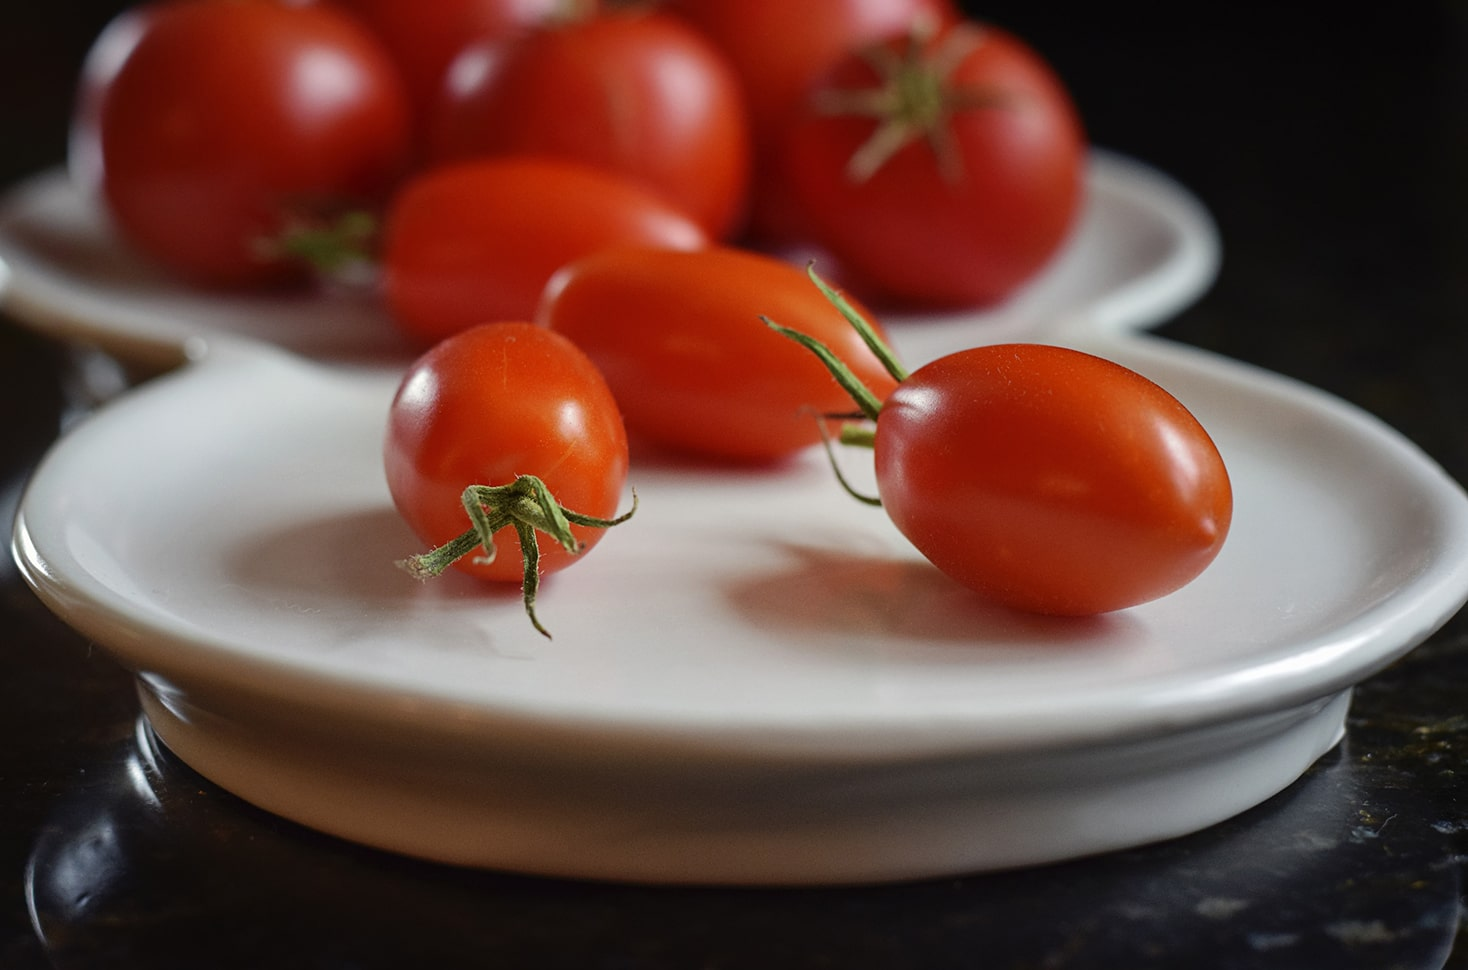 Plate with tomatoes on it.